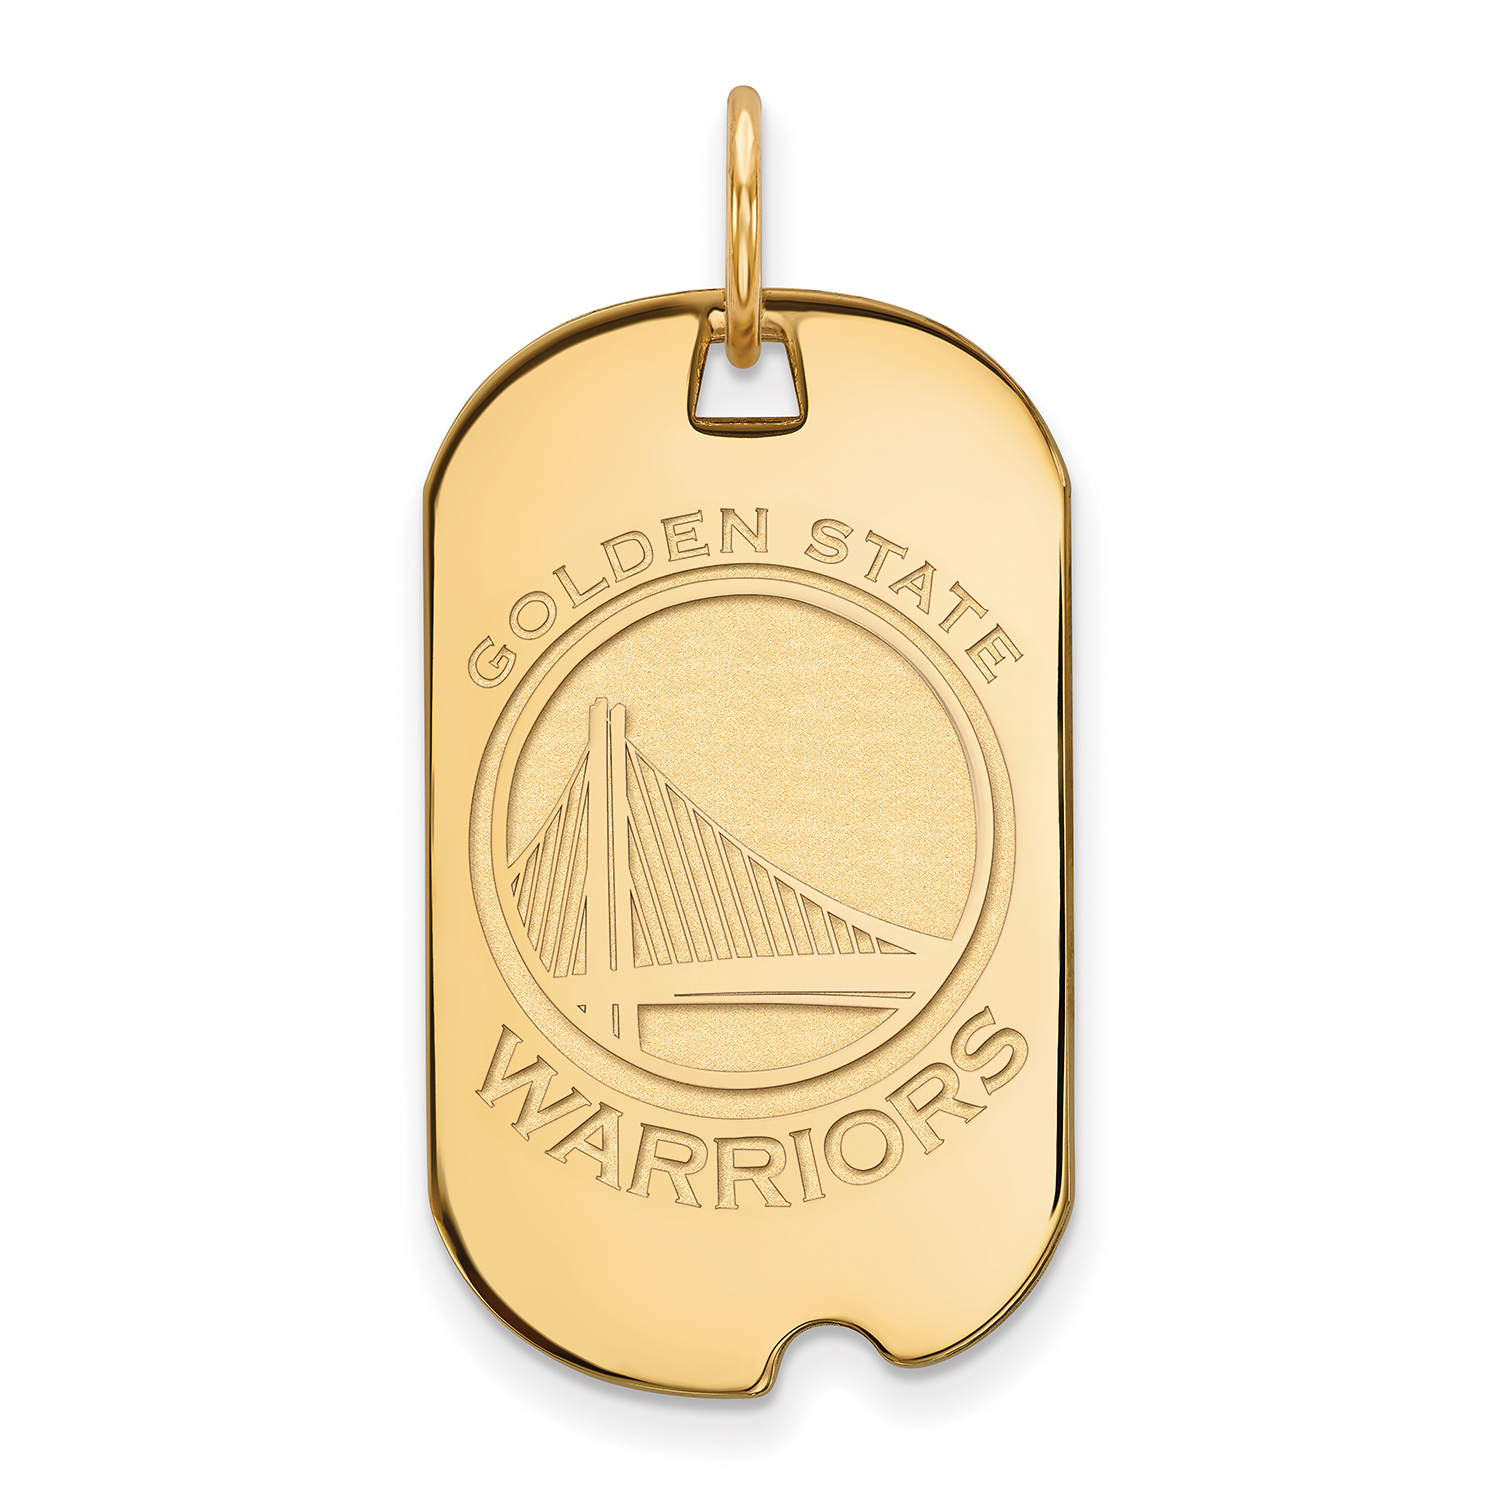 Golden State Warriors Women's Gold Plated Small Dog Tag - No Size